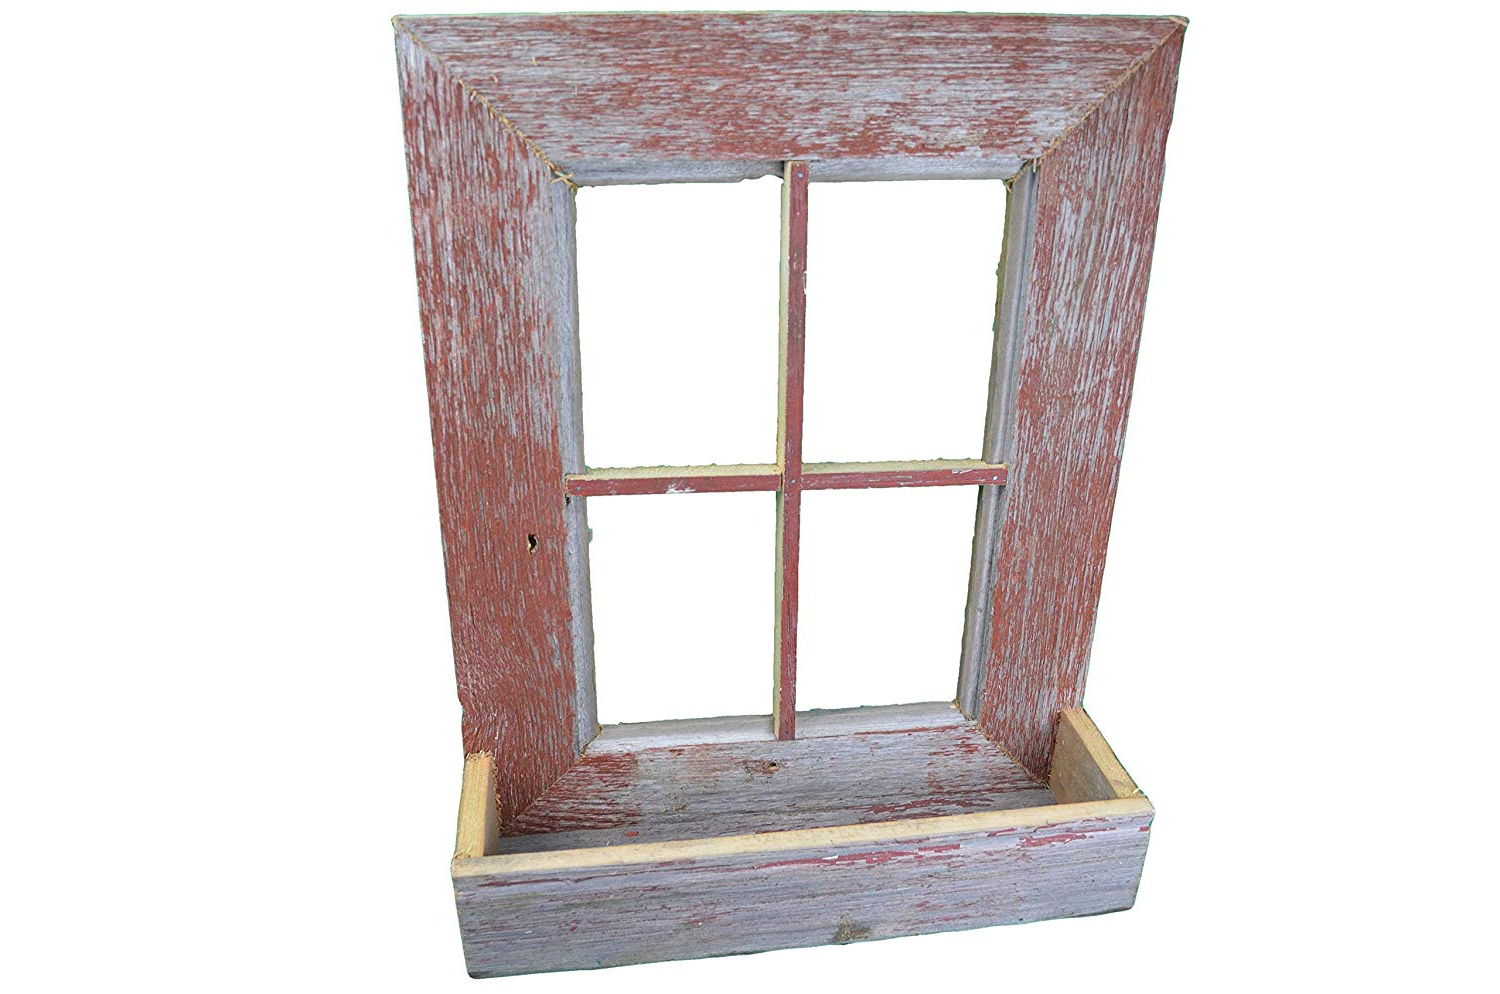 Newest Old Rustic Barn Window Frame Pertaining To Amazon : Amishwares, Collectible Handmade Barn Wood Window Frame (Gallery 11 of 20)